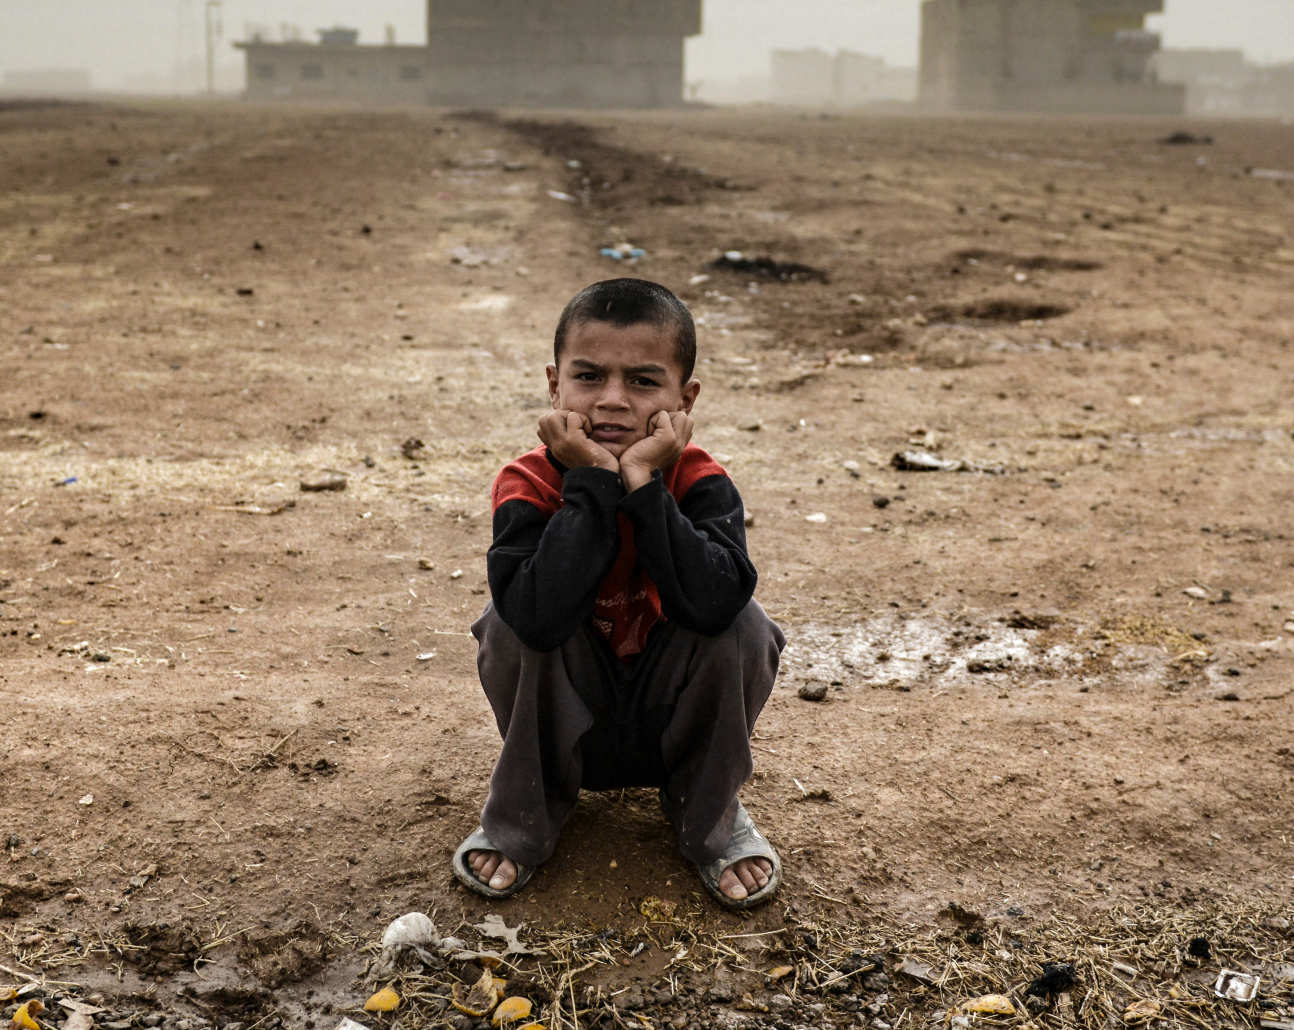 A young boy sitting in a mine field